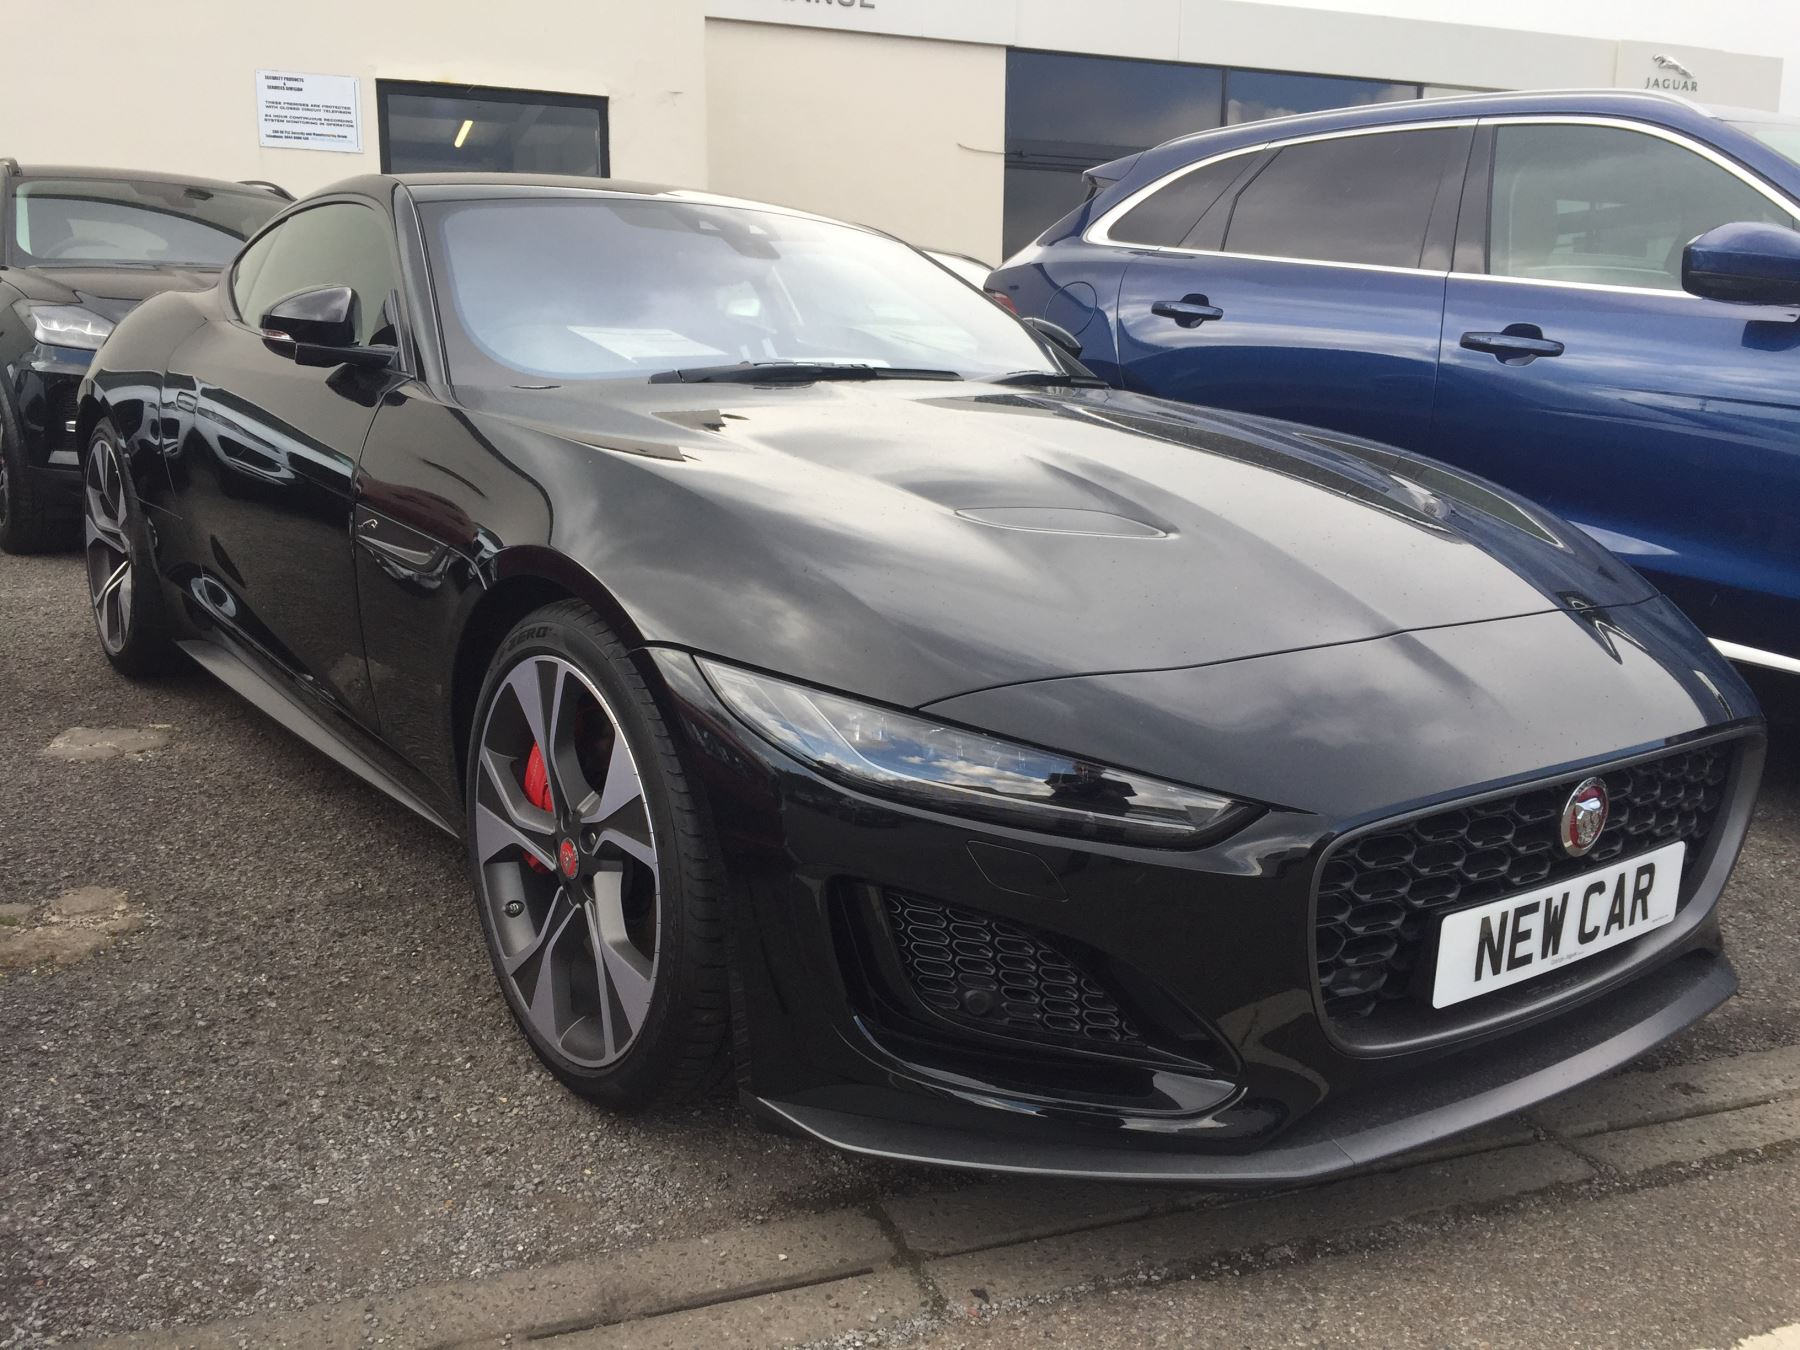 Jaguar F-TYPE 5.0 P450 S/C V8 First Edition AWD SPECIAL EDITIONS Automatic 2 door Coupe